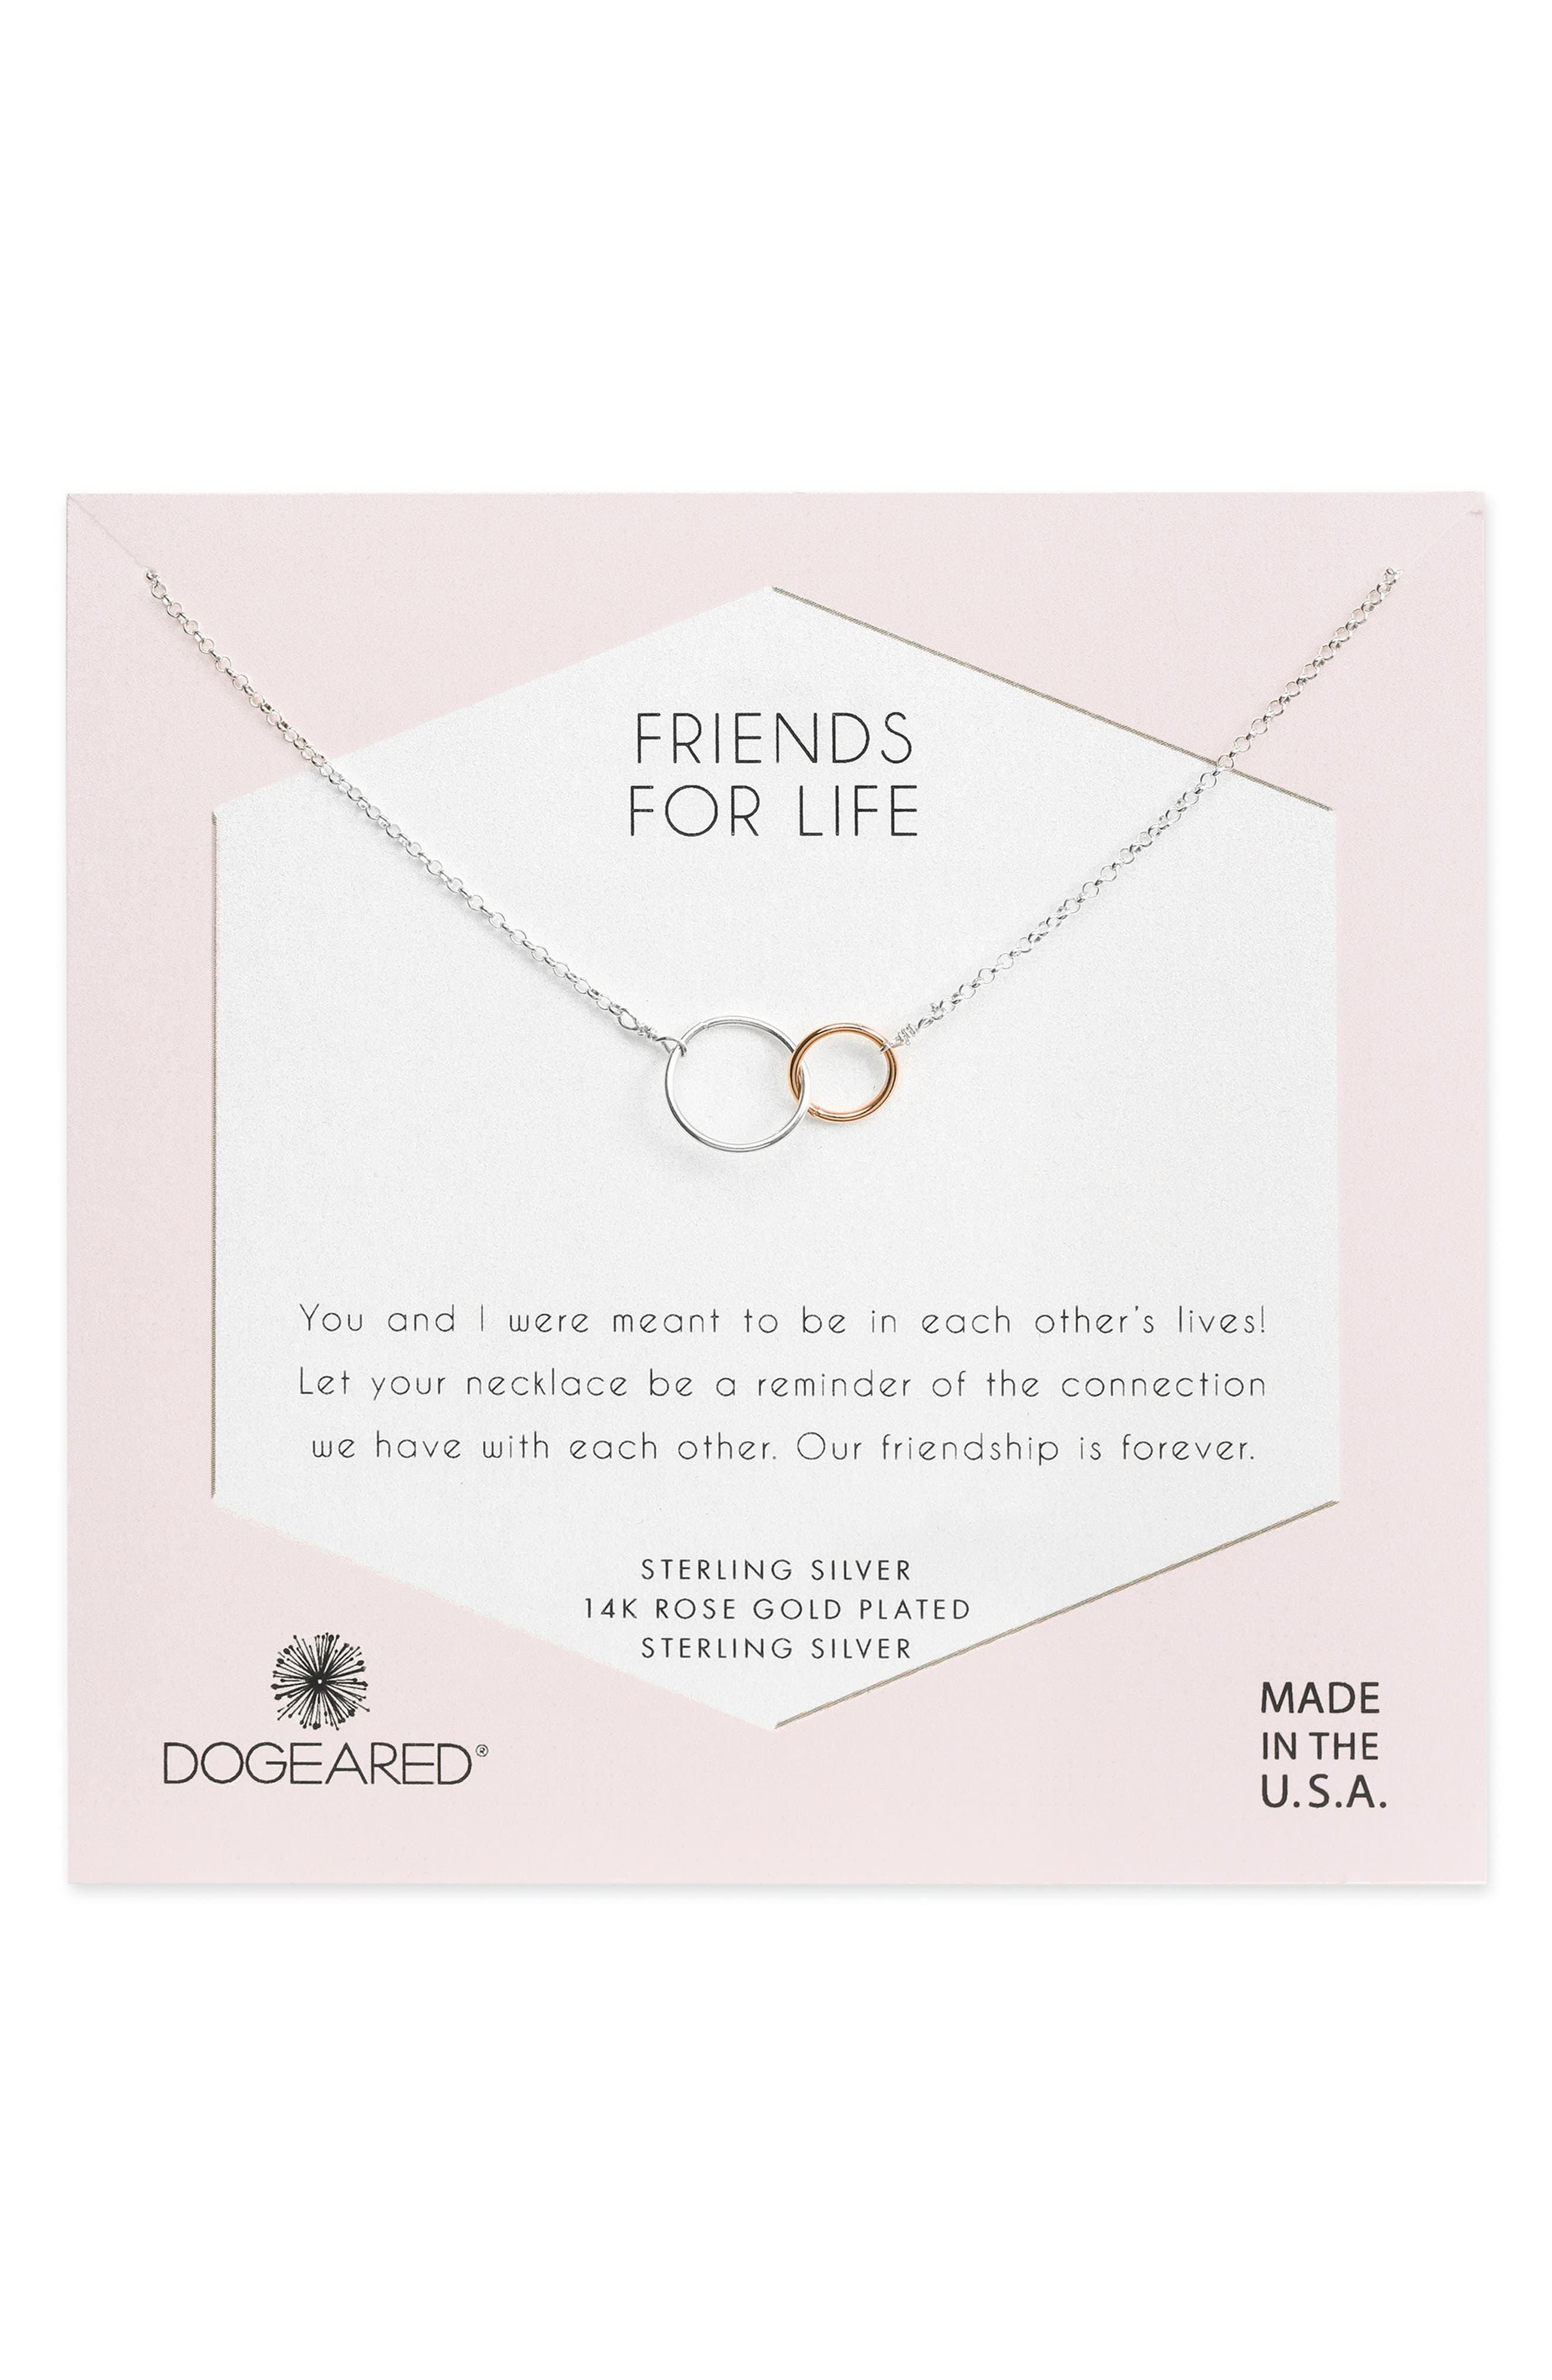 Friends for Life Necklace,                         Main,                         color,